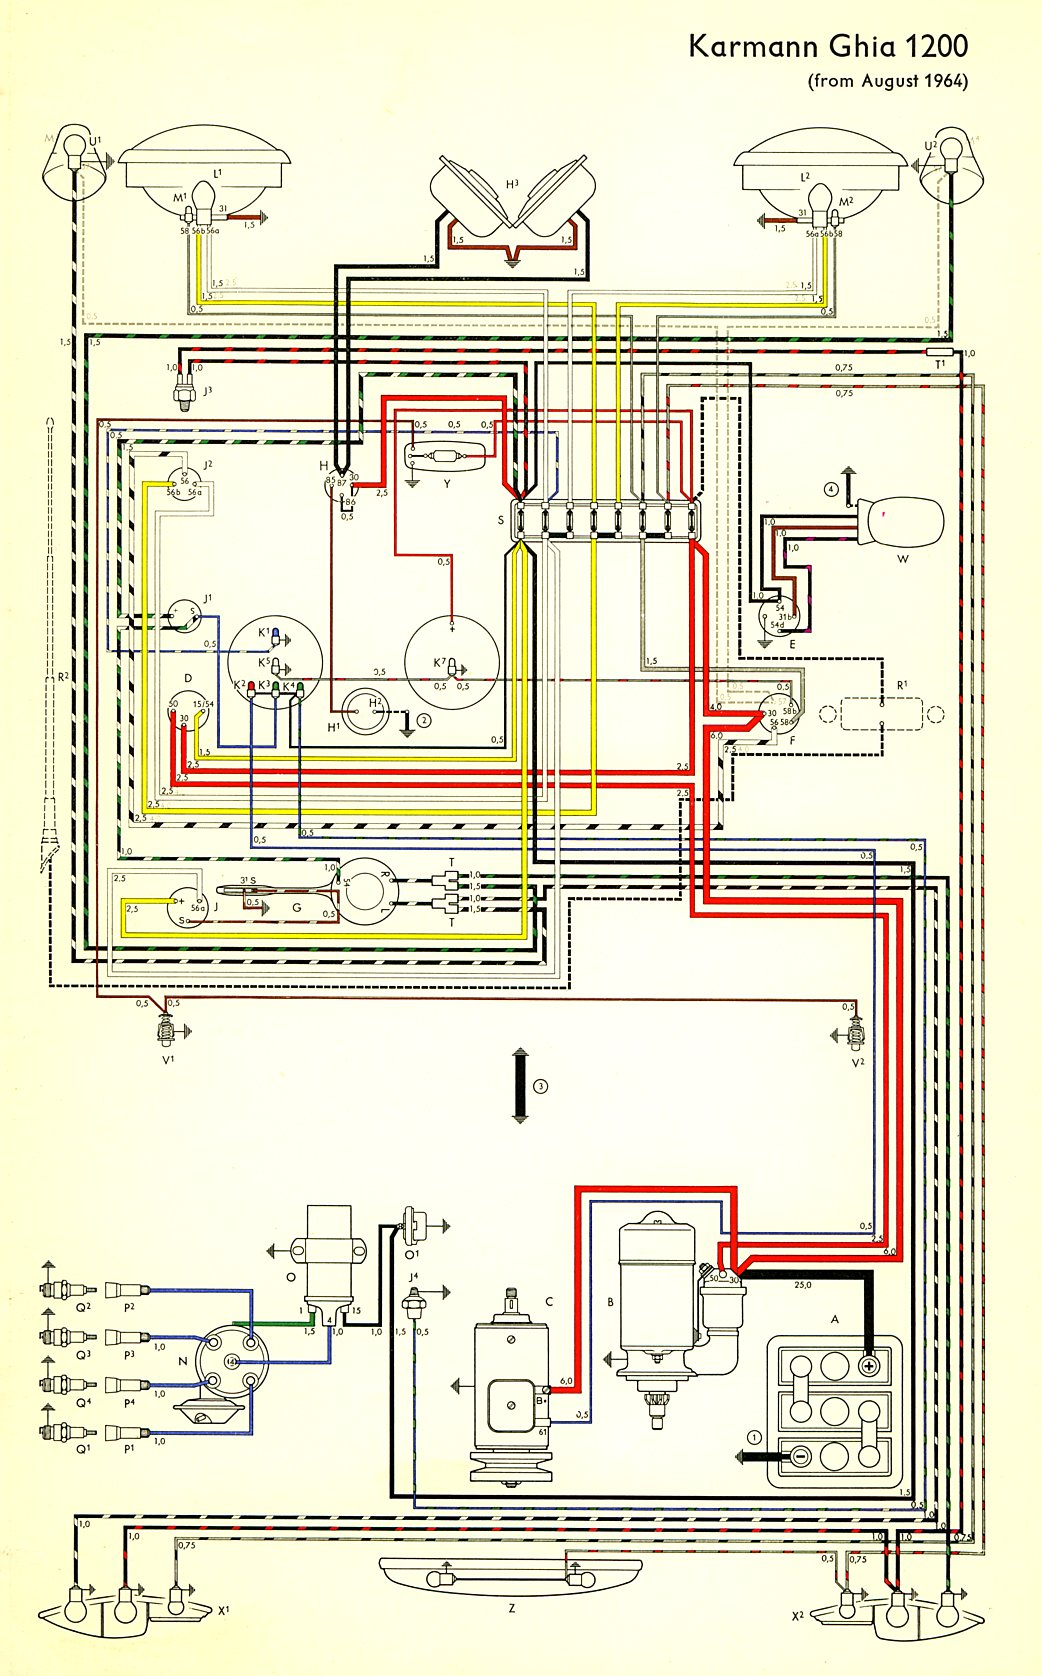 ghia_65 thesamba com karmann ghia wiring diagrams 1965 vw beetle wiring diagram at mifinder.co